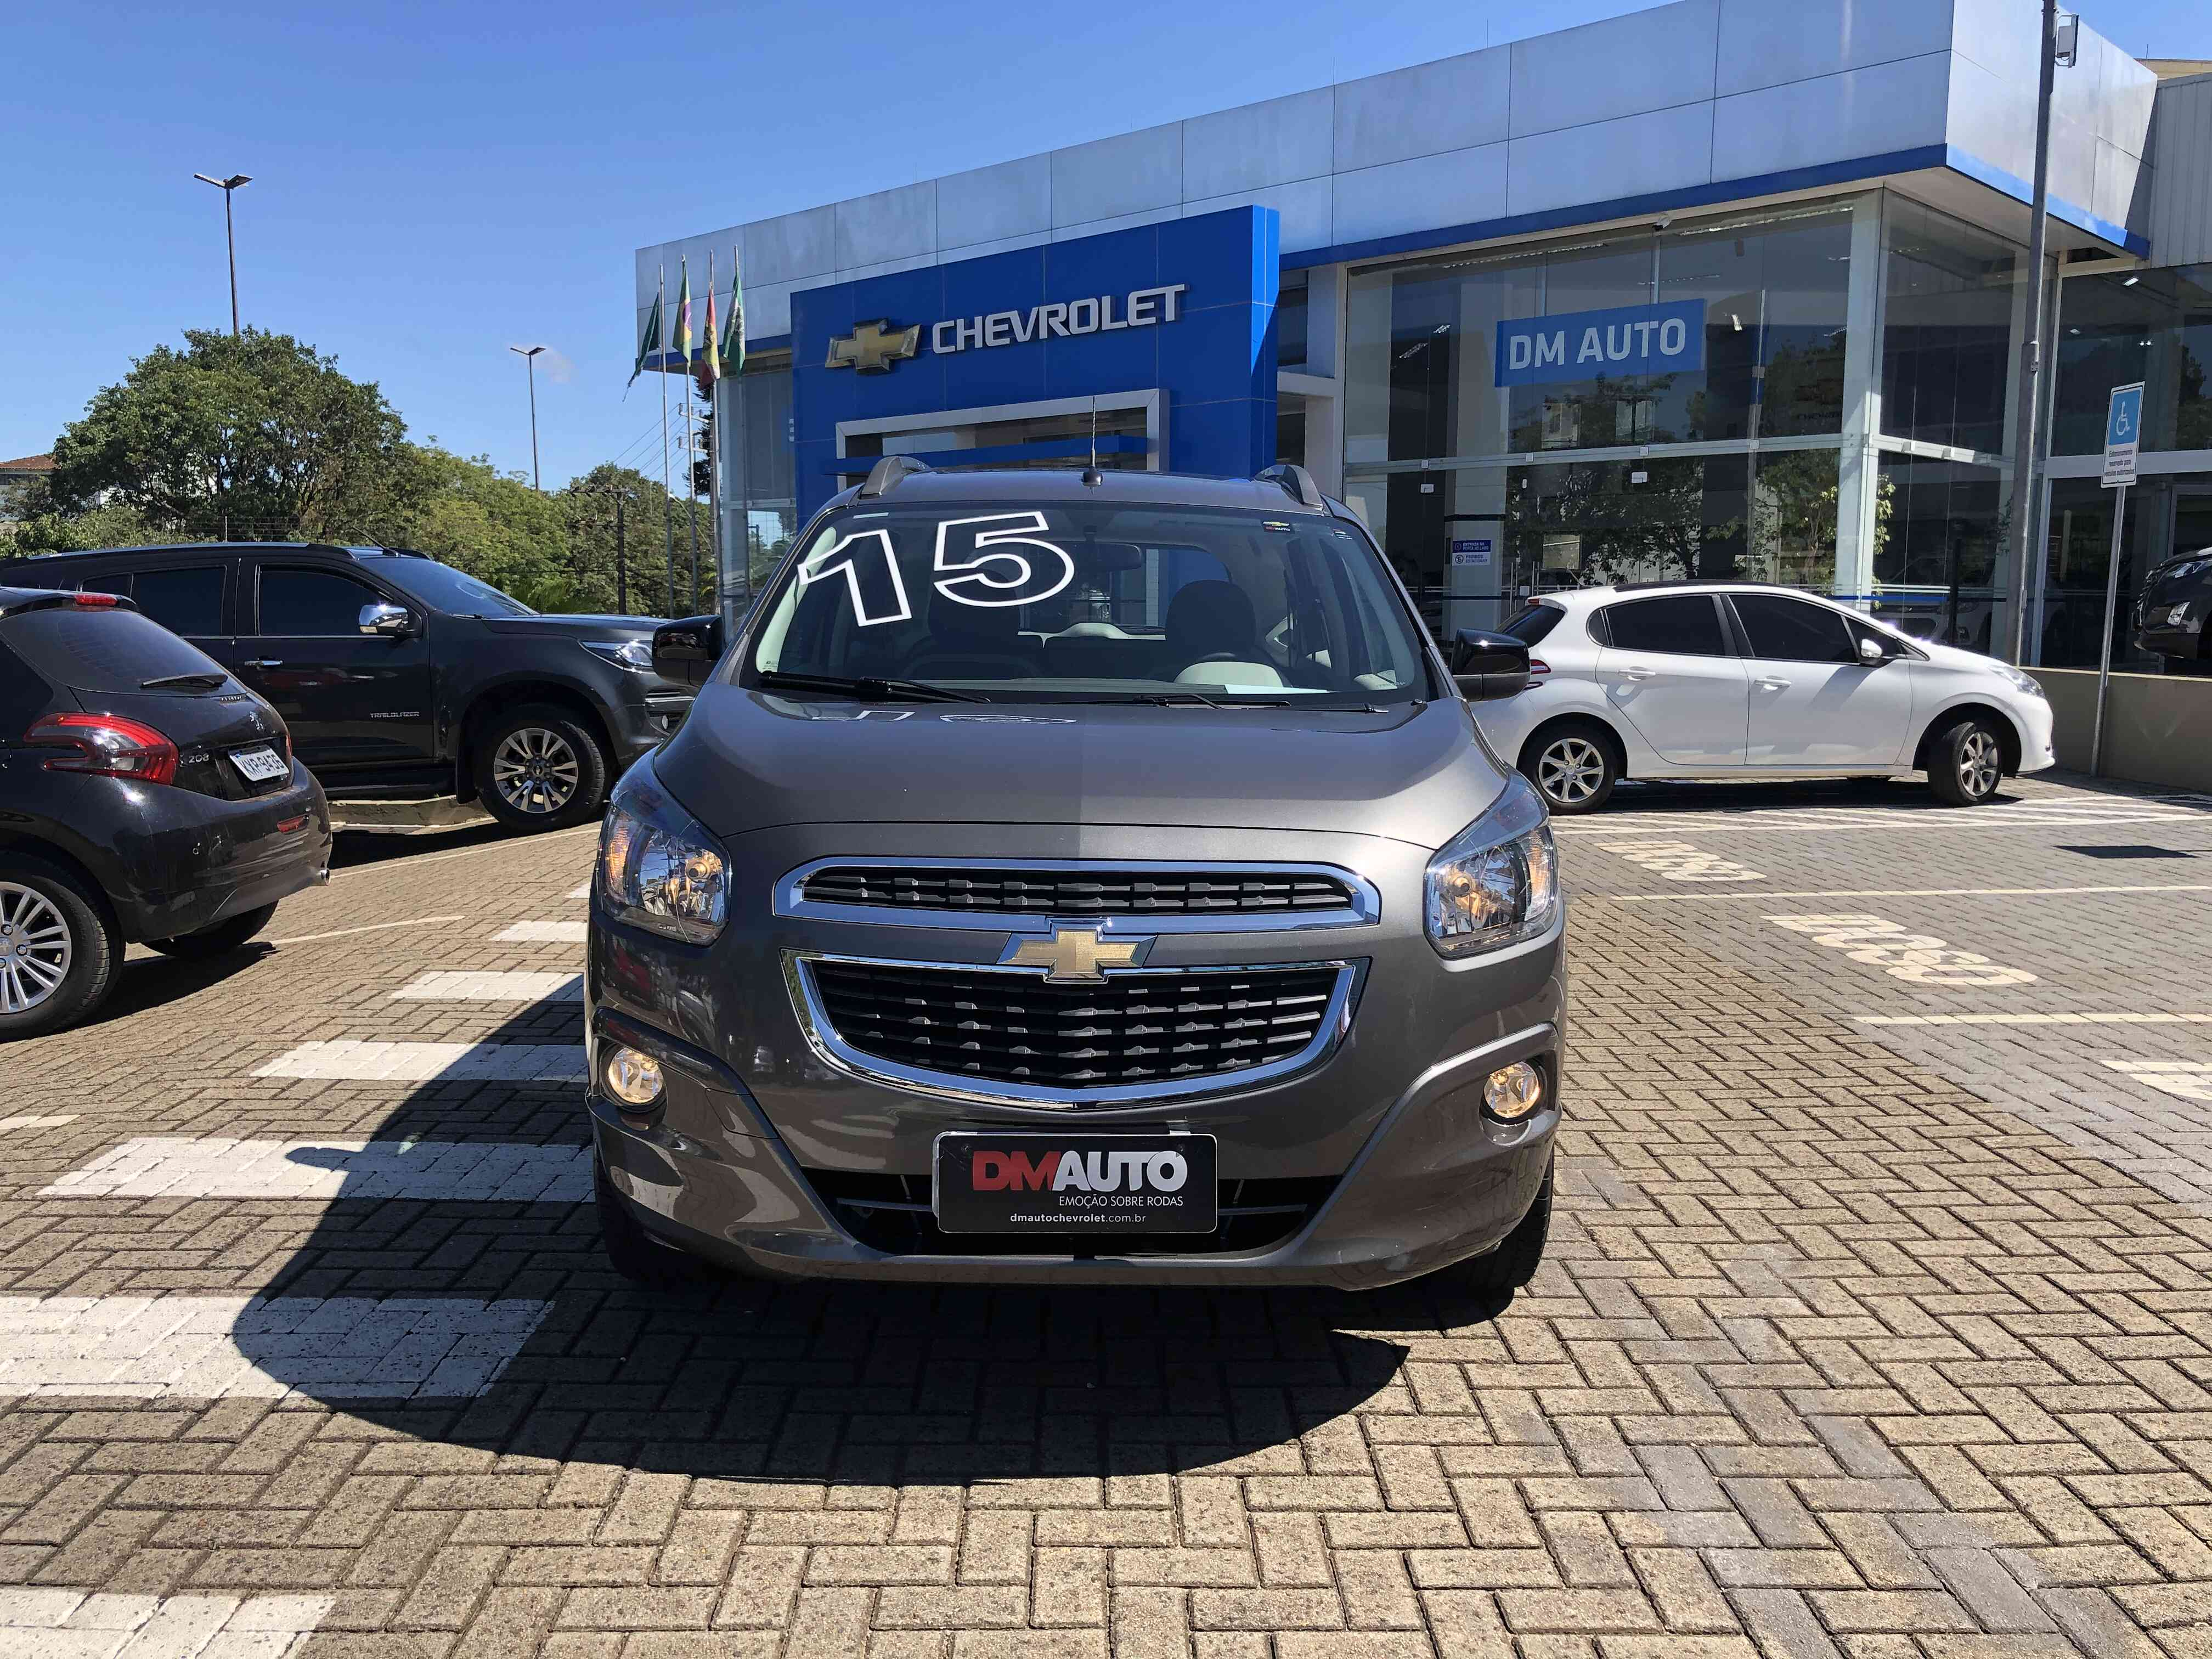 CHEVROLET SPIN 1.8L AT LT ADV SEMINOVO 1.8 2015